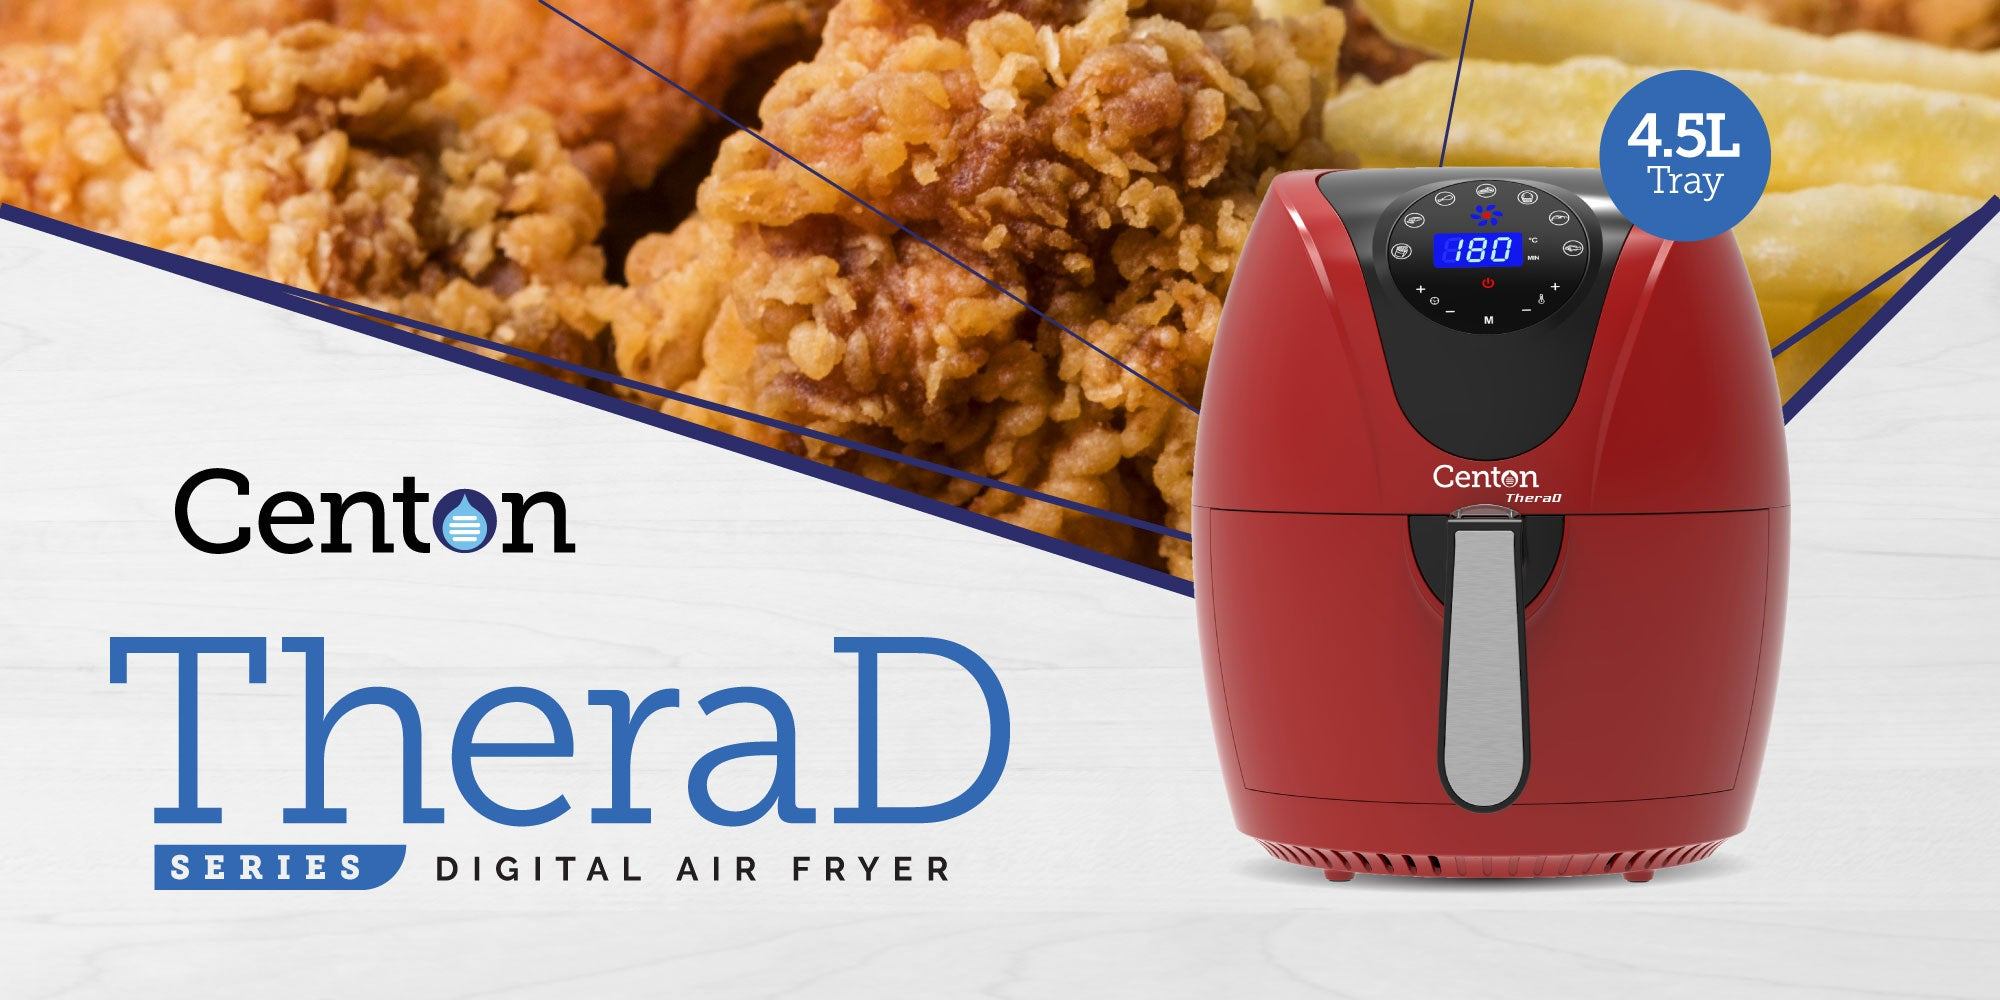 Centon TheraD Digital Air Fryer with Smart Digital Touchscreen Control